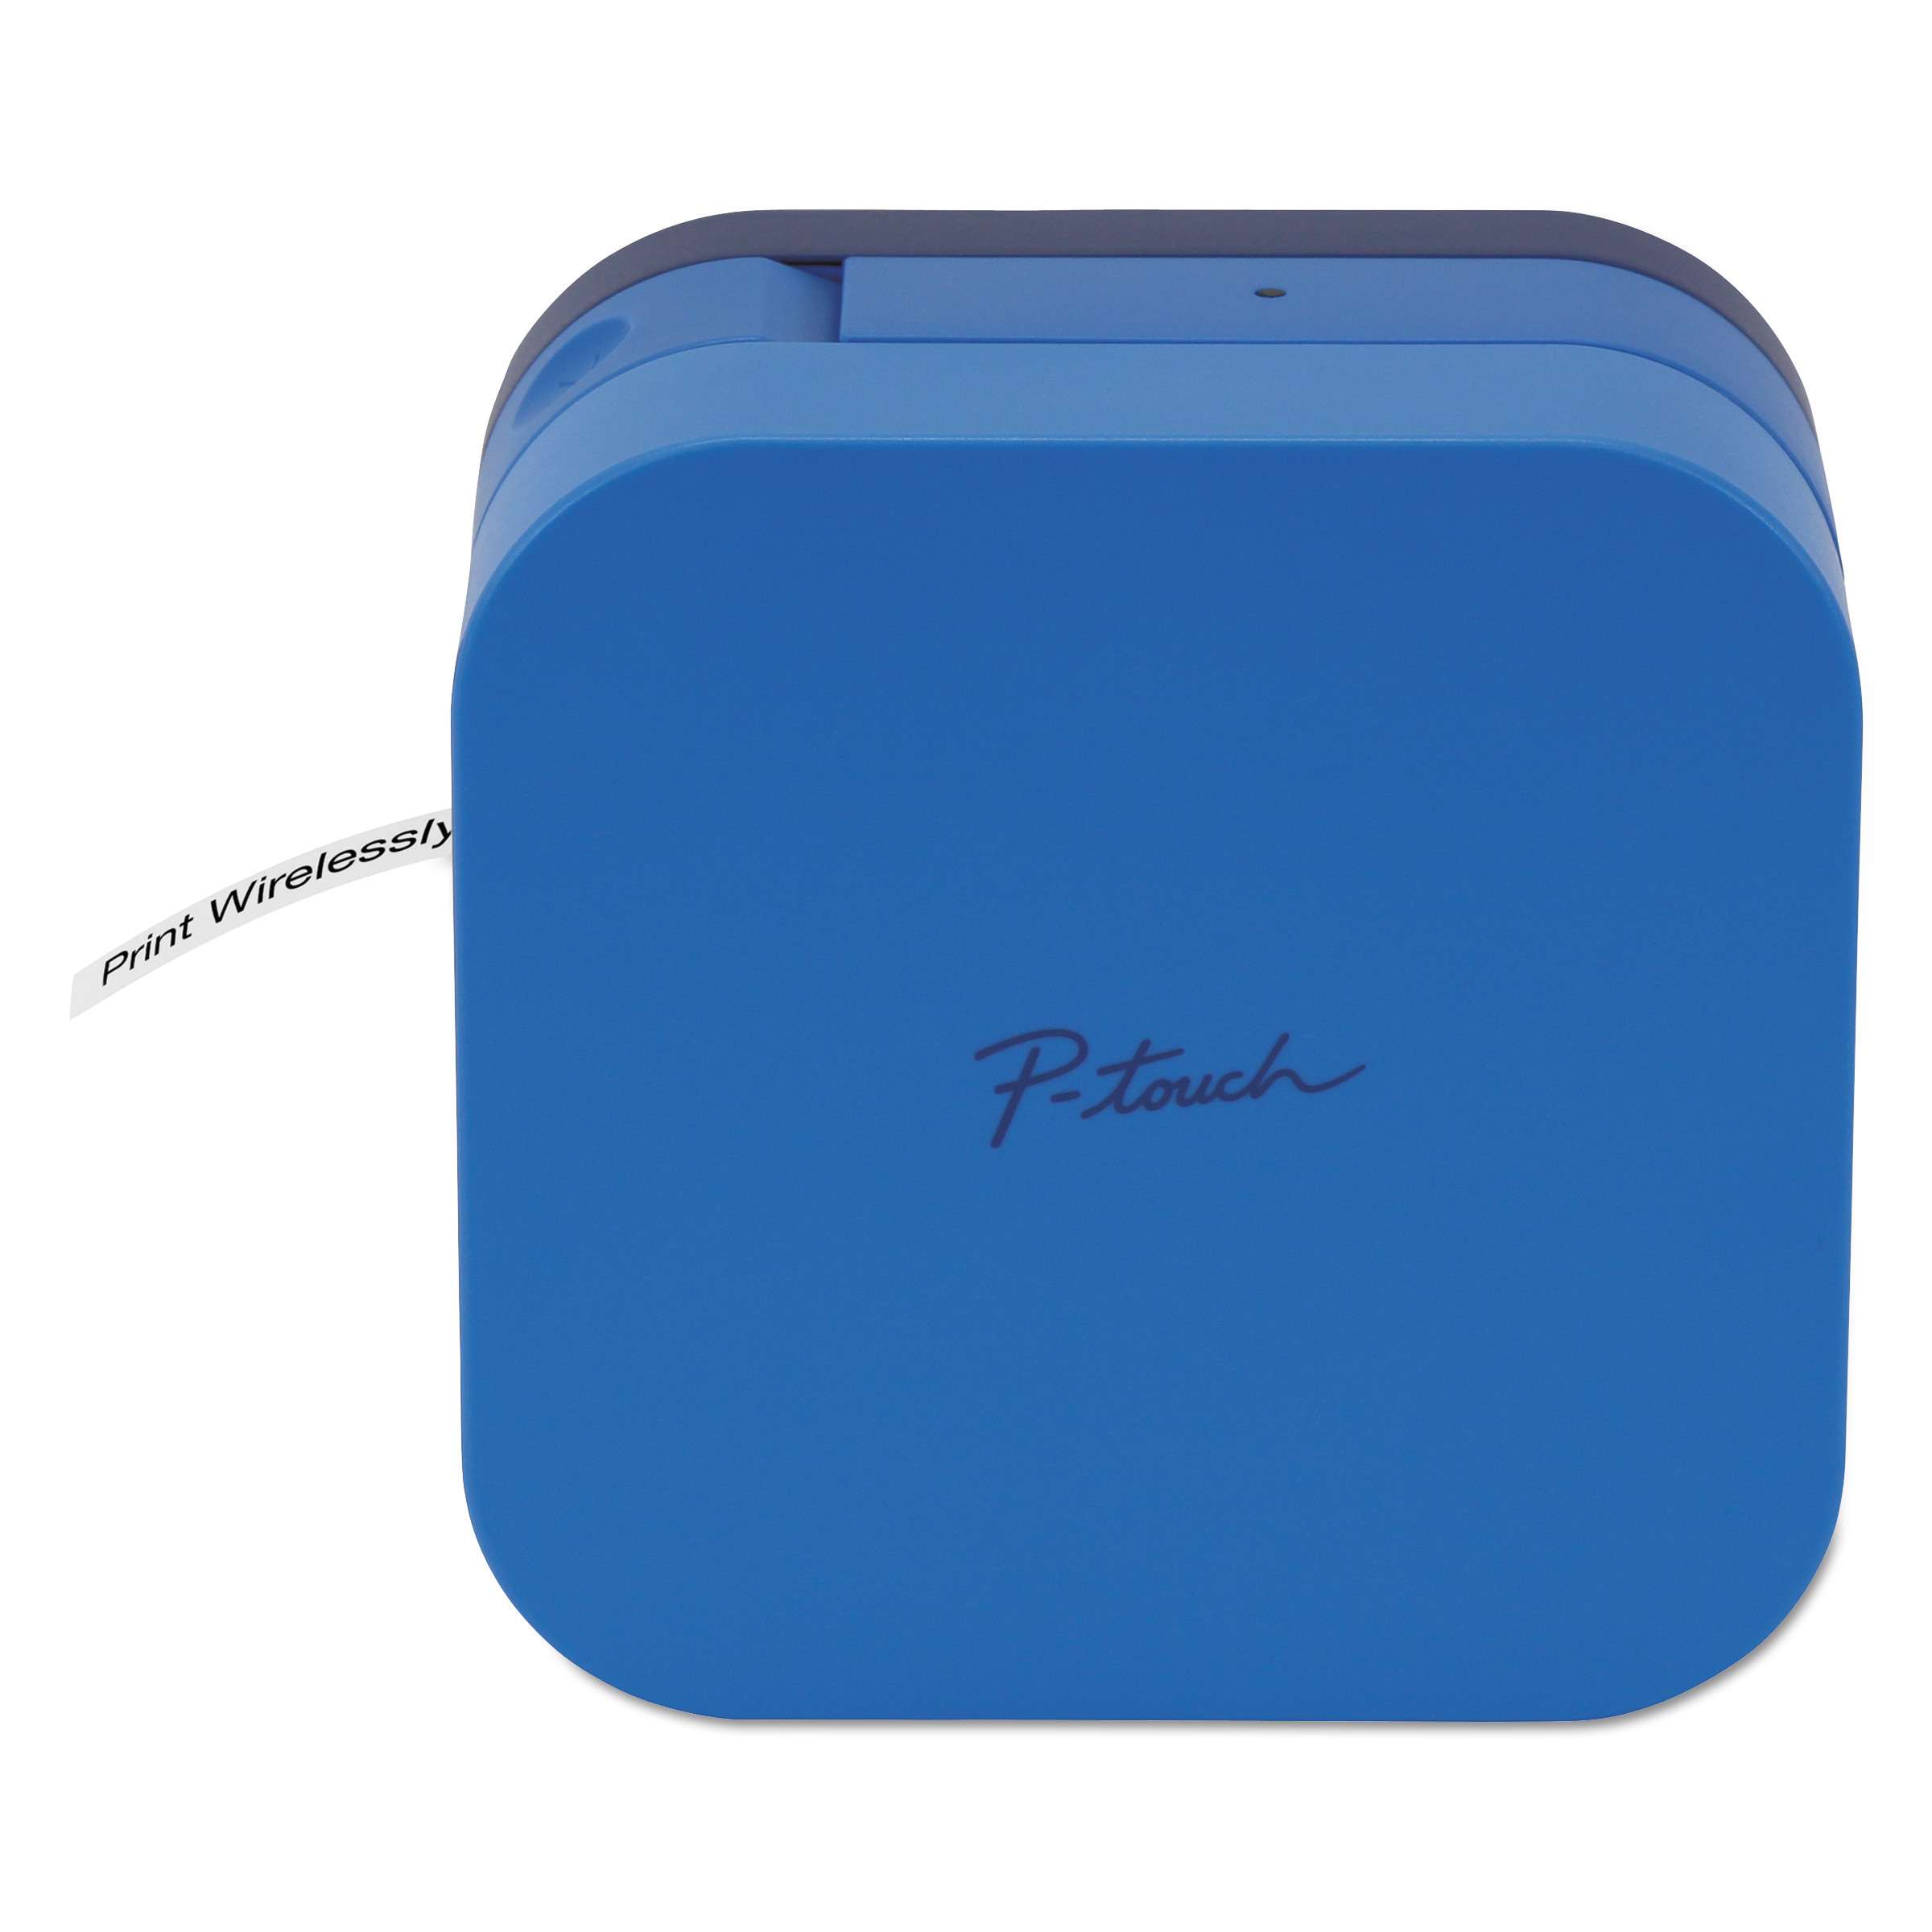 Brother P-touch CUBE Smartphone Label Maker with Bluetooth Wireless Technology Blue by BROTHER INTL. CORP.